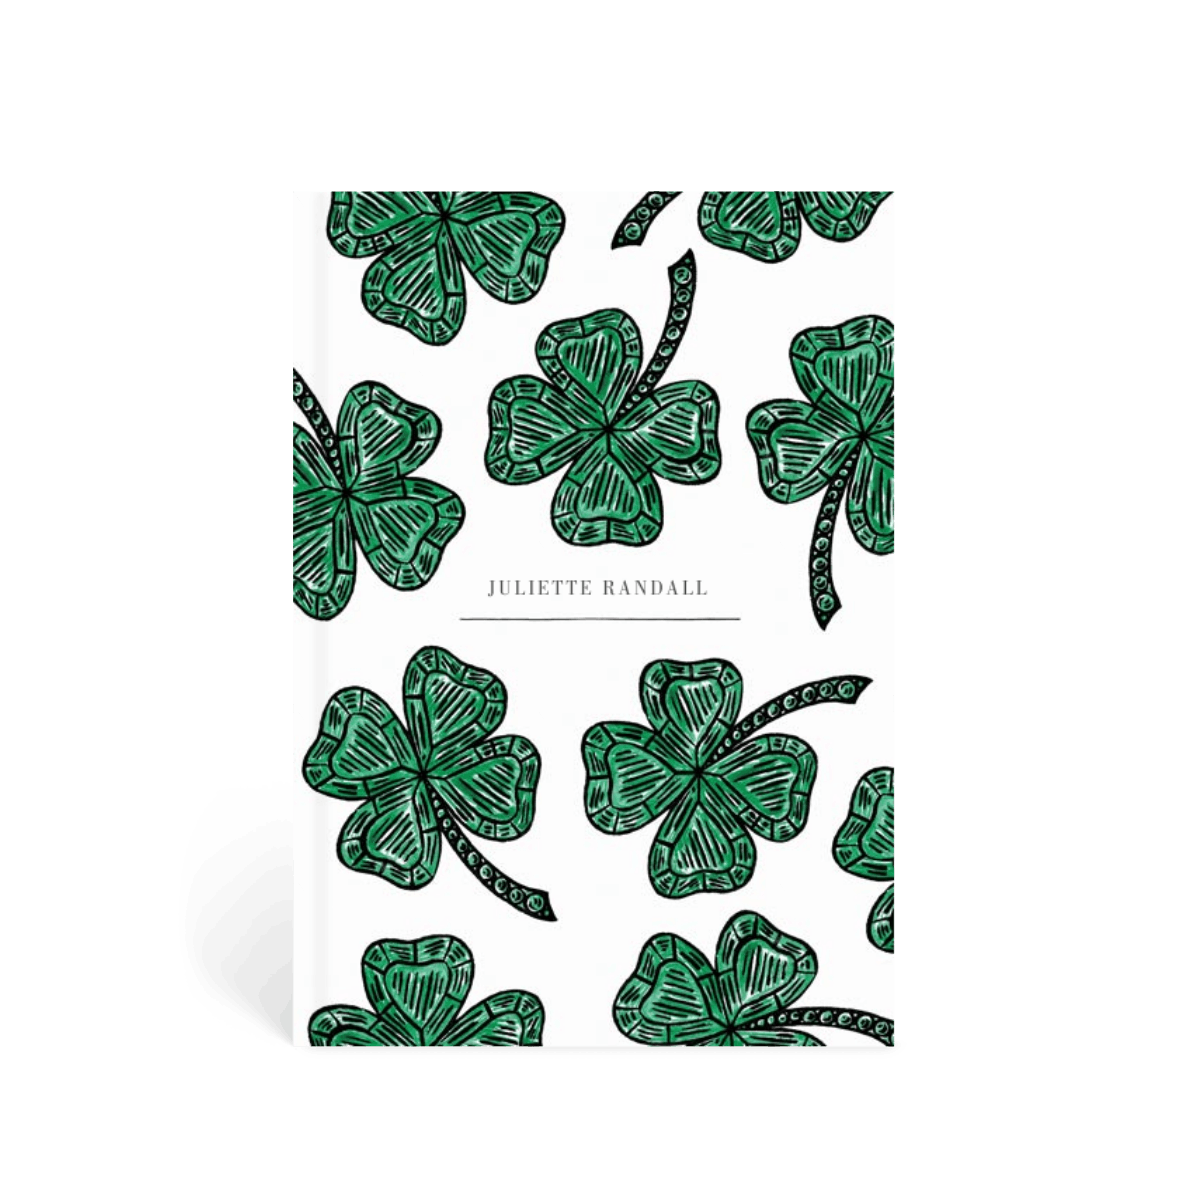 Https%3a%2f%2fwww.papier.com%2fproduct image%2f67979%2f25%2fshamrock 16073 front 1552995811.png?ixlib=rb 1.1